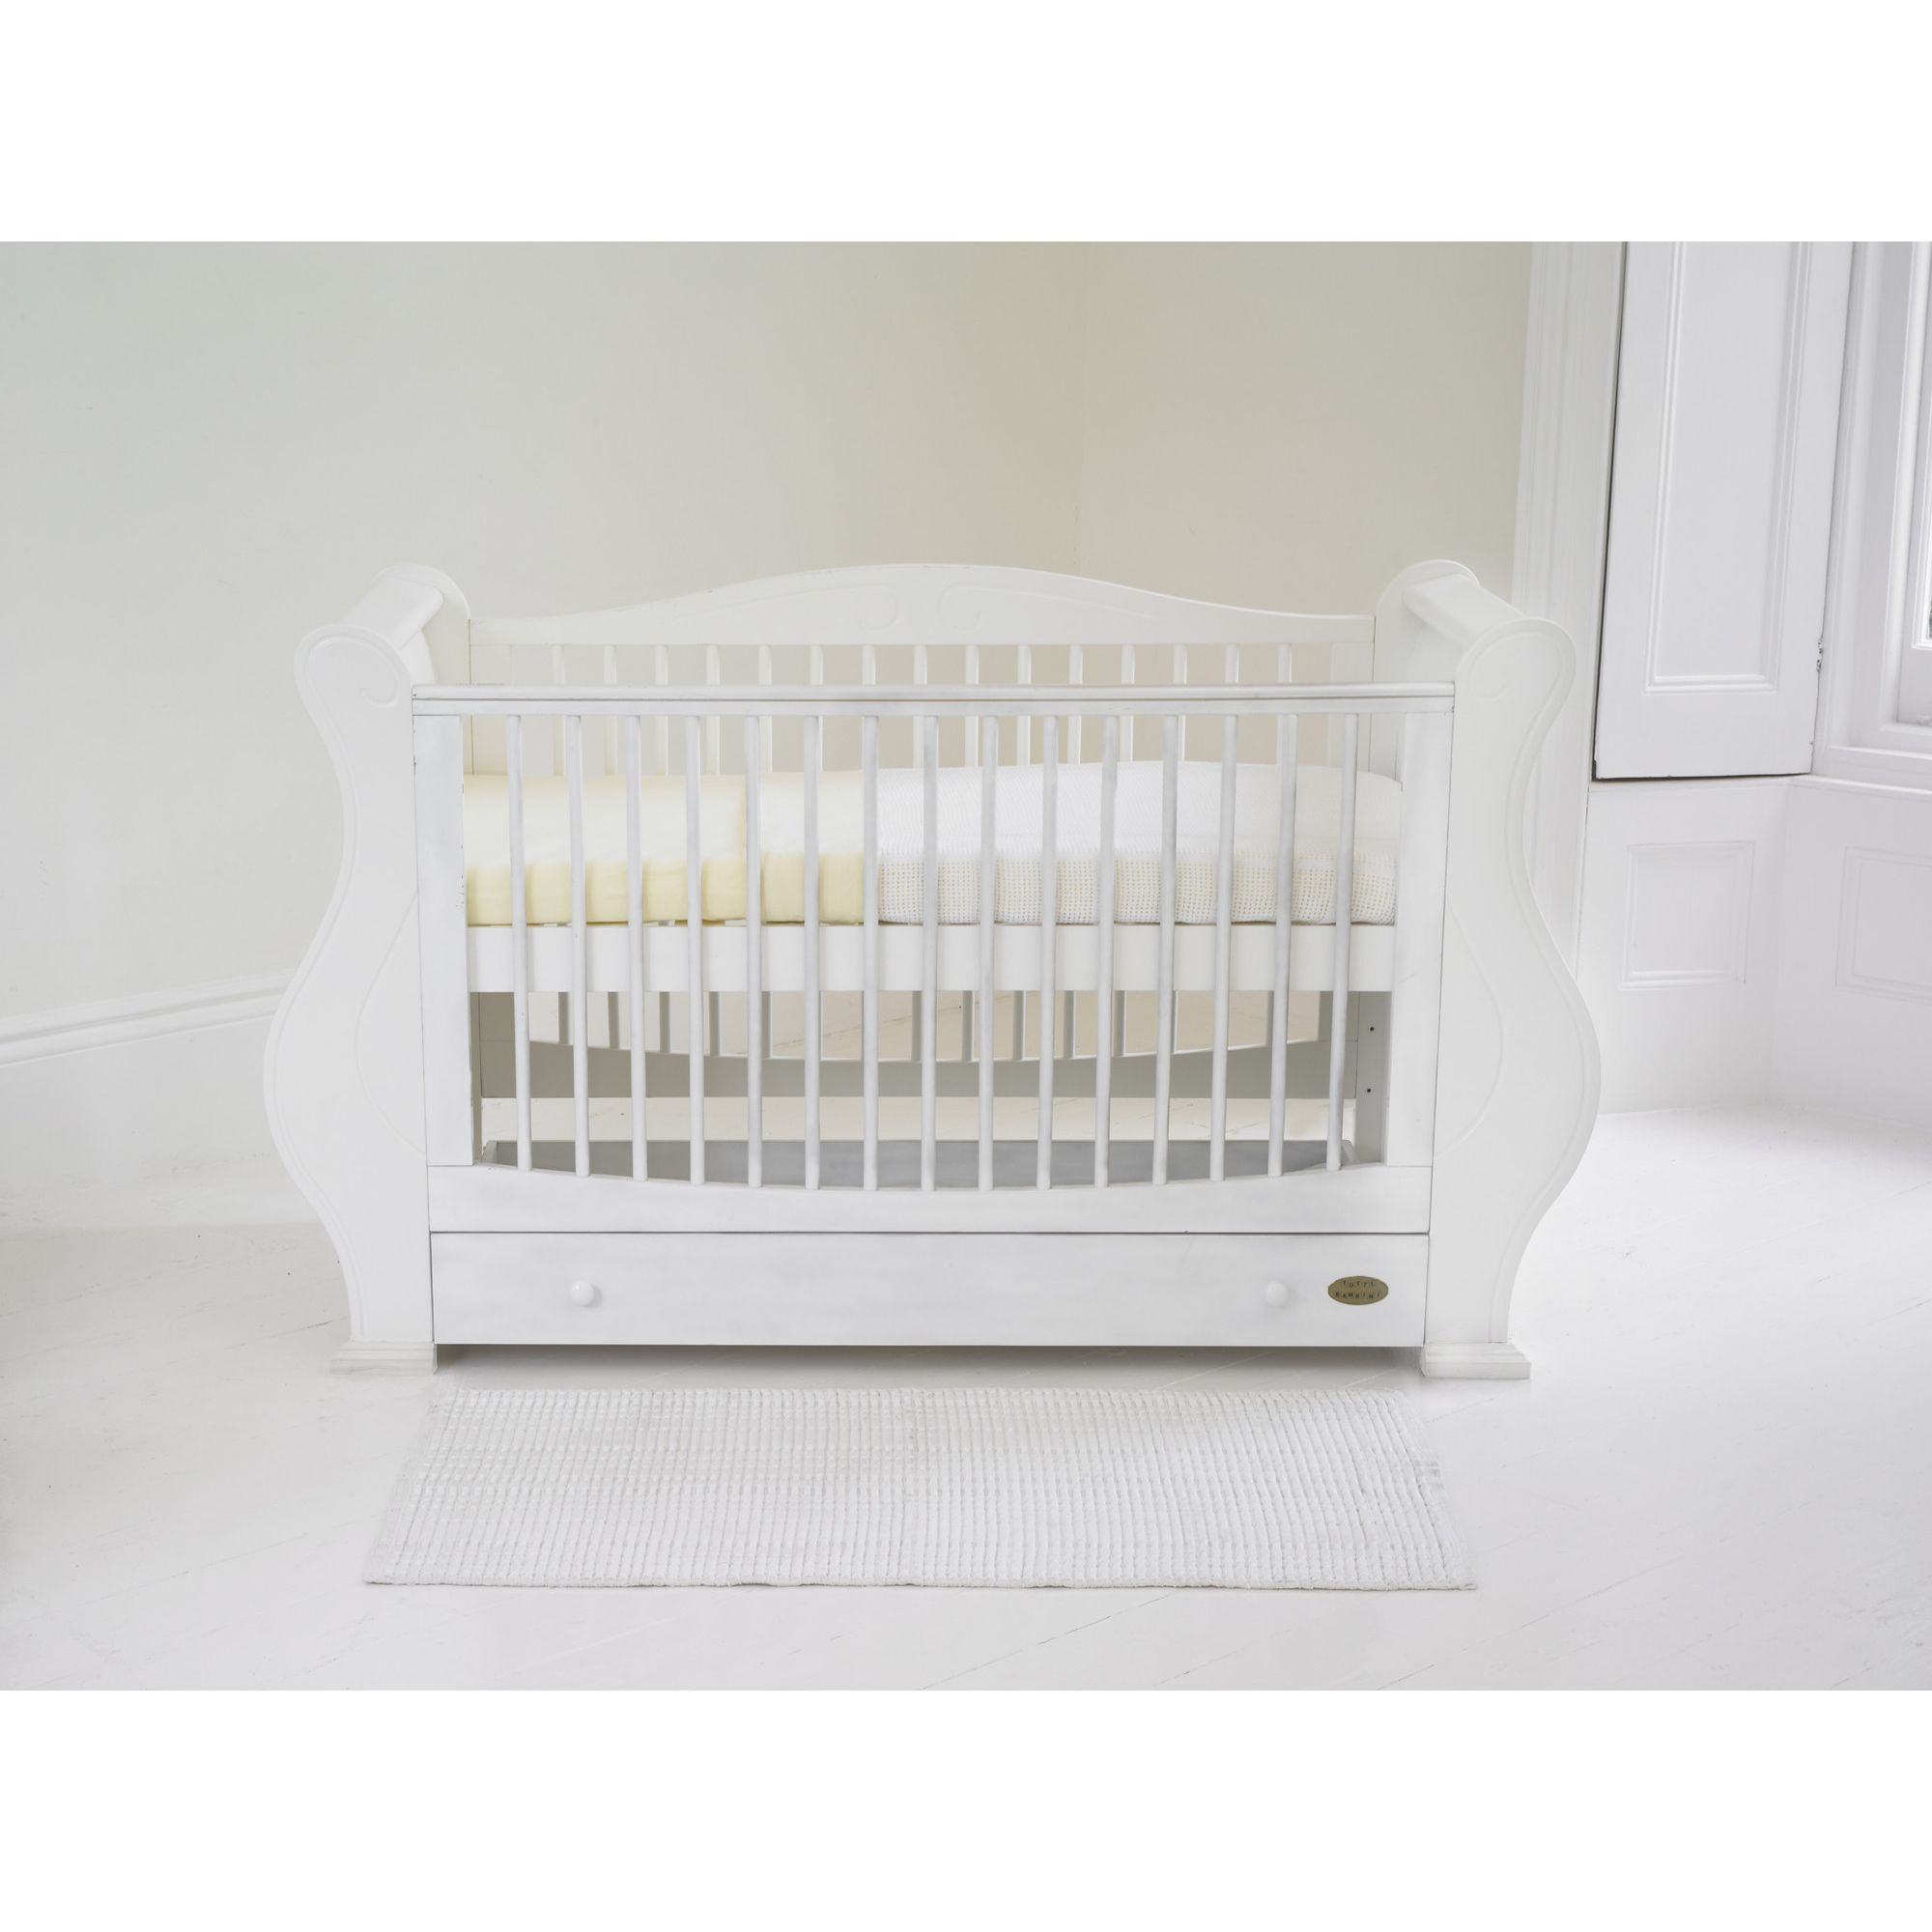 Tutti Bambini Louis Sleigh Cot Bed with Drawer in White at Tesco Direct